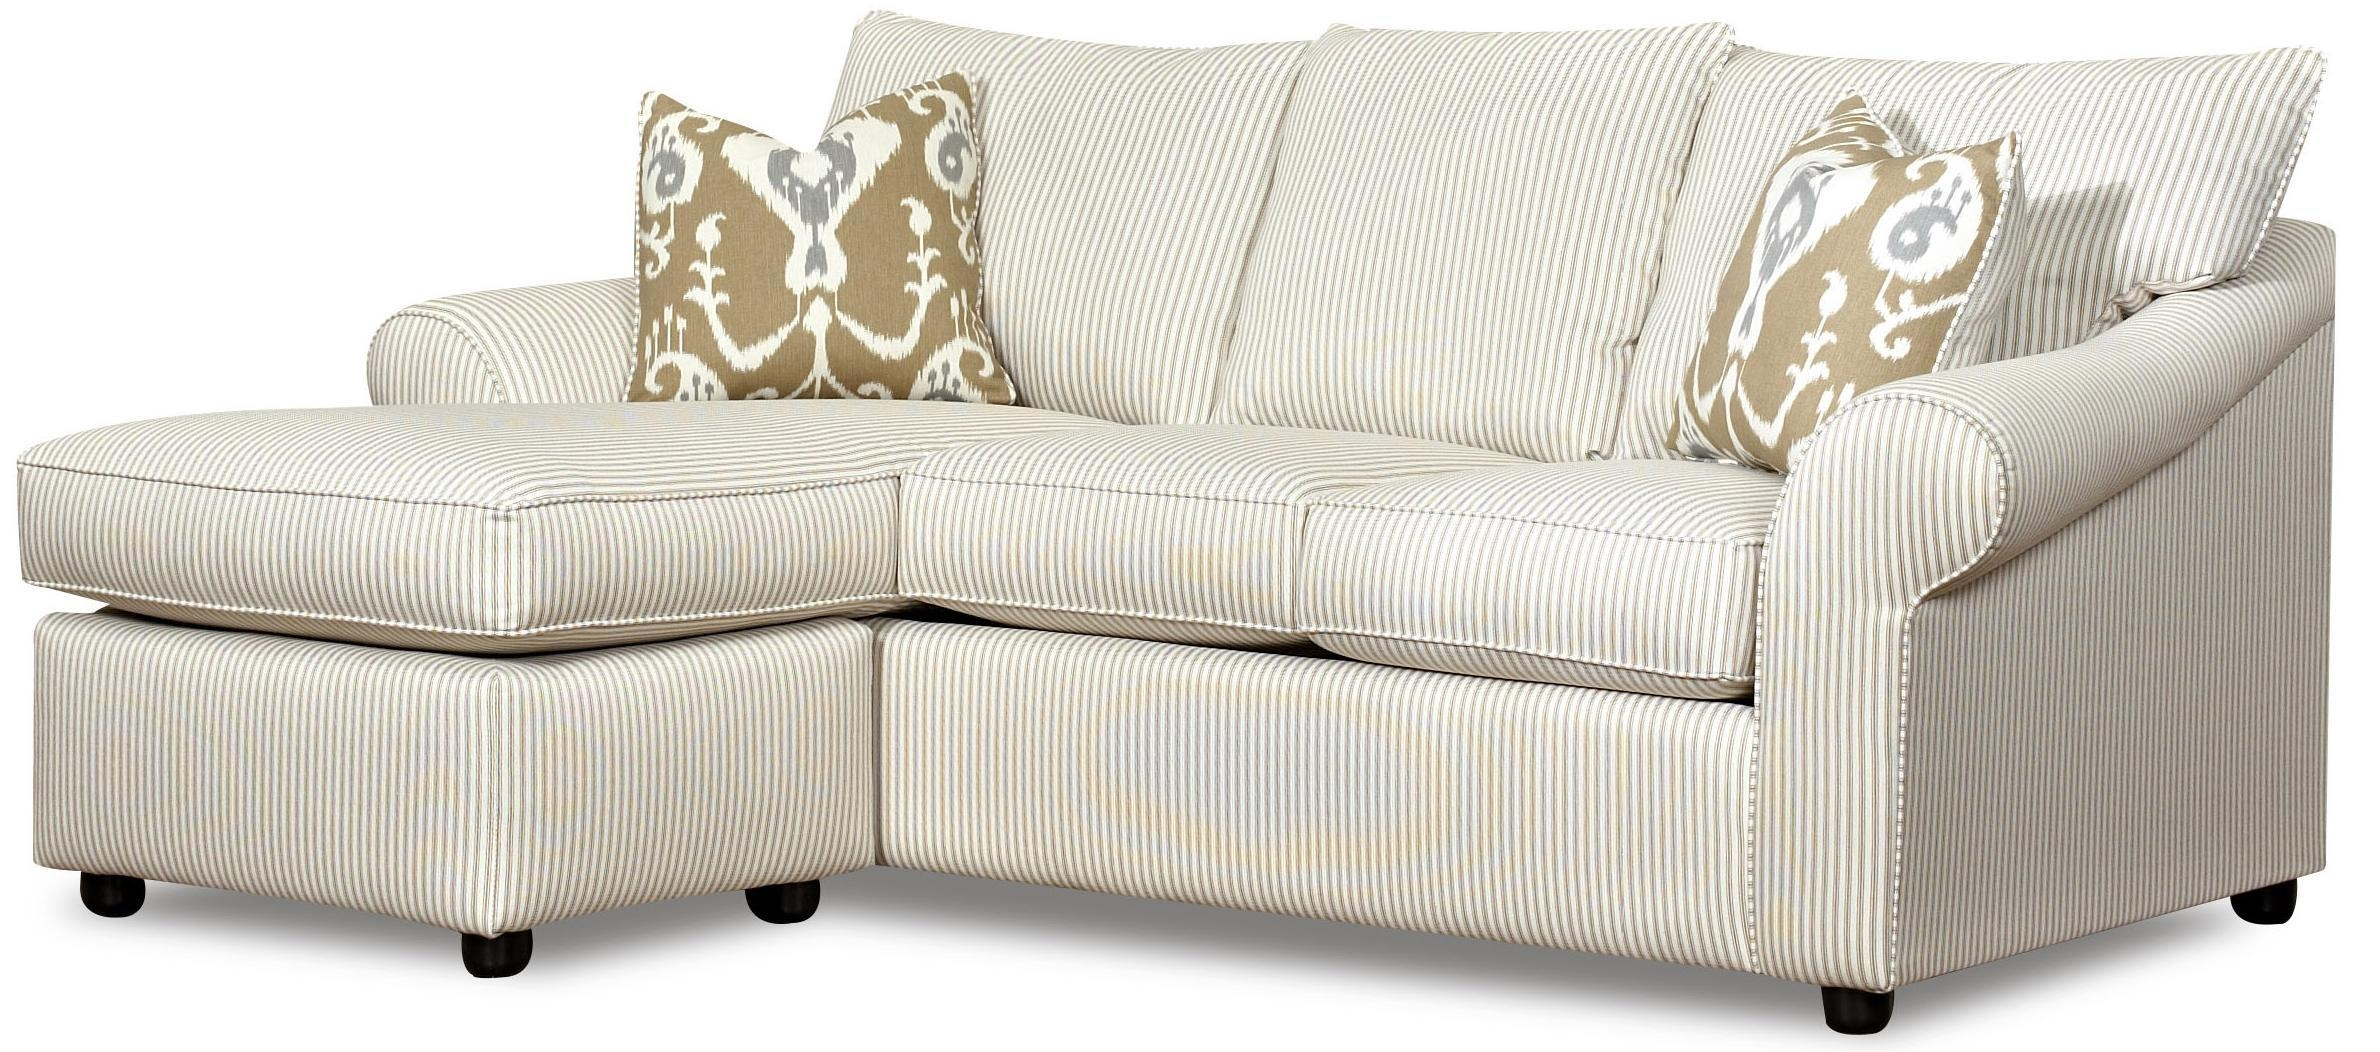 Shay Lounge 20 Top Sofas With Chaise Longue Sofa Ideas